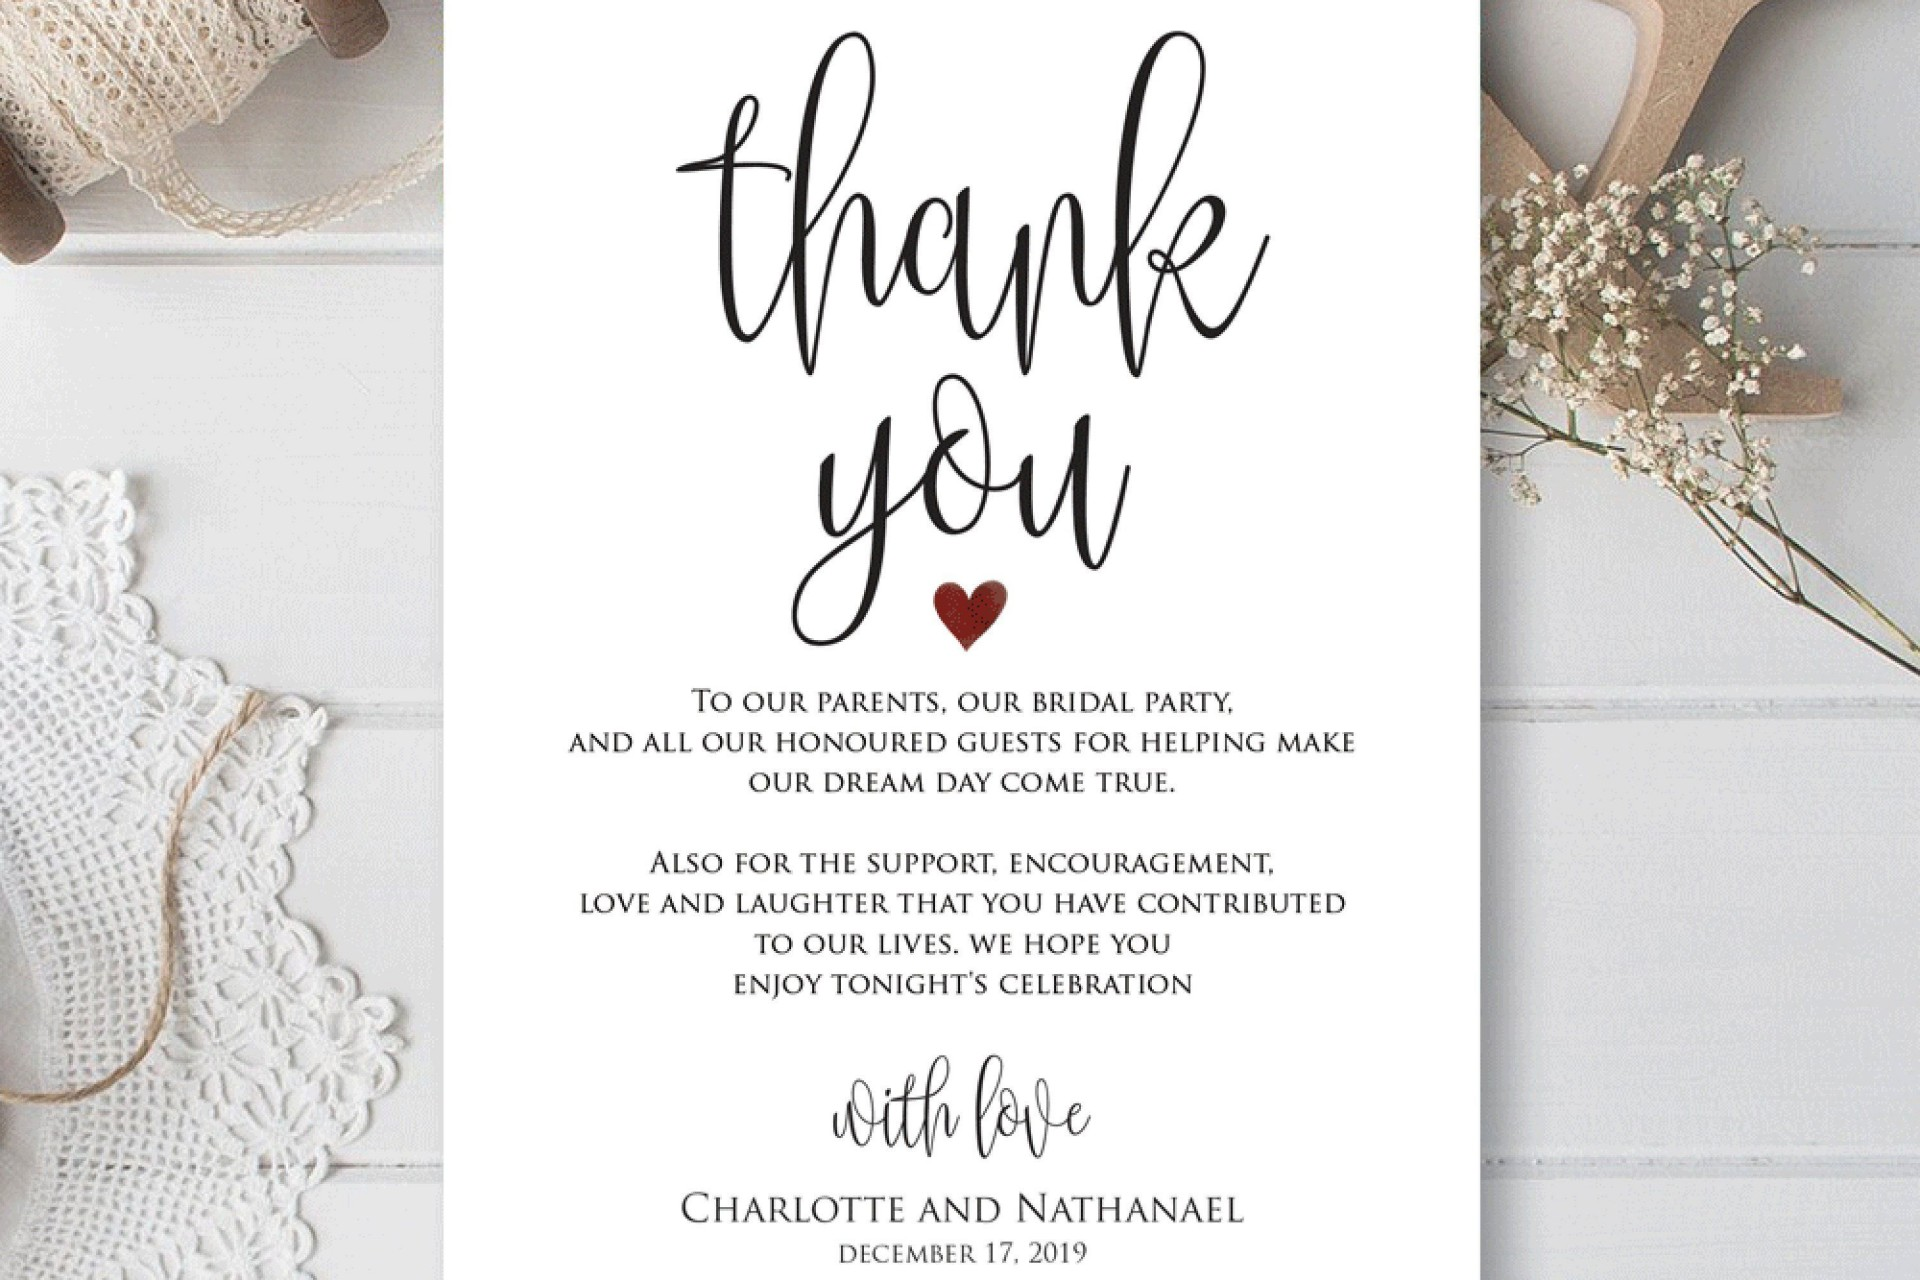 000 Remarkable Thank You Card Template Idea  Wedding Busines Word Free1920